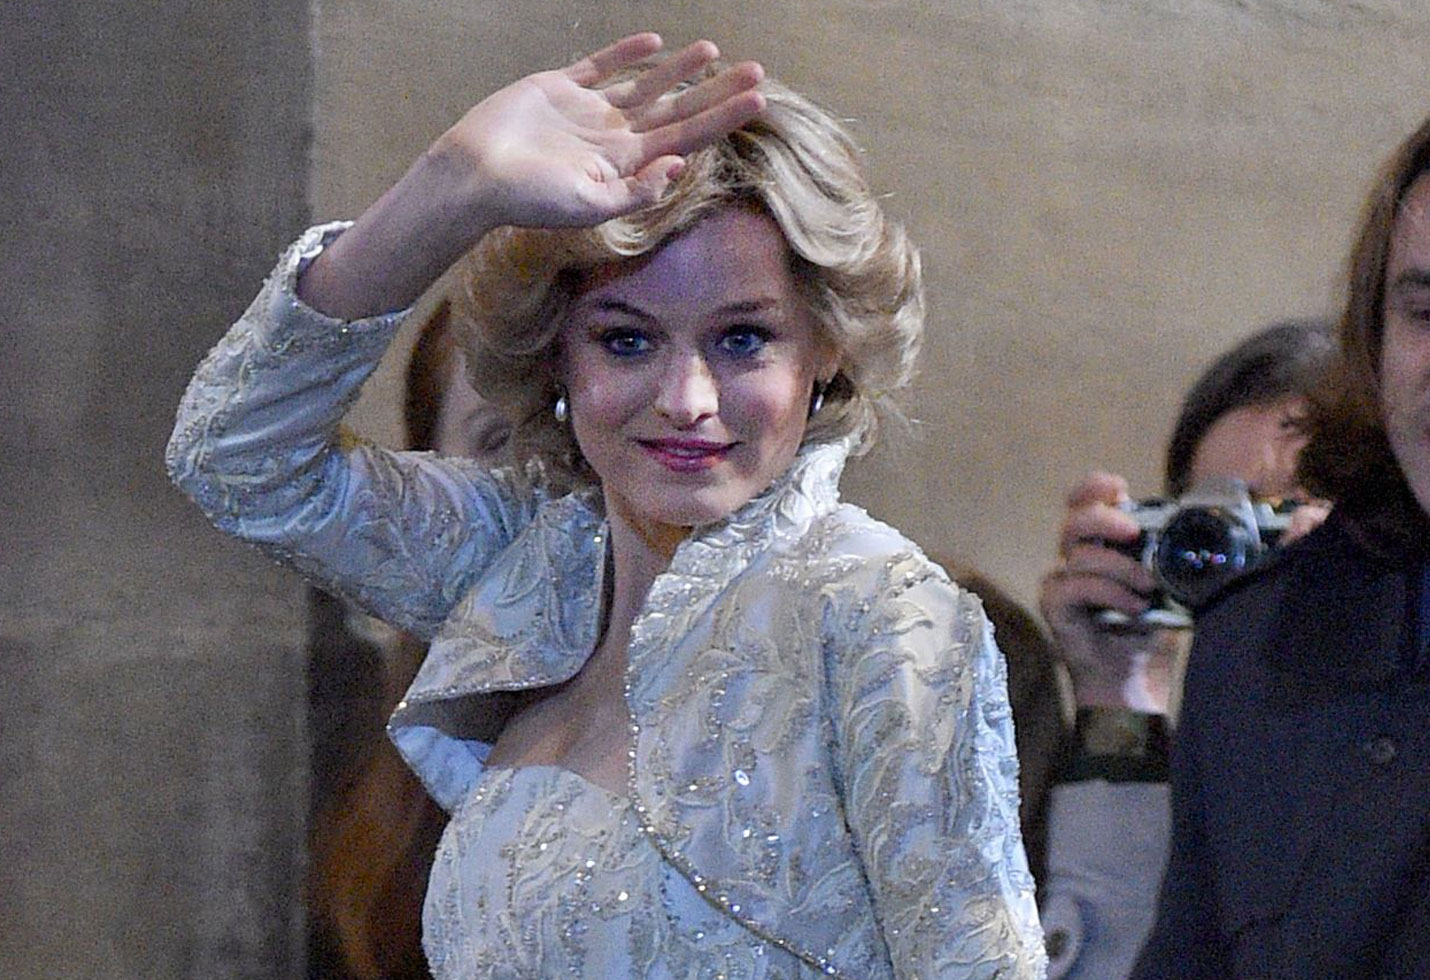 Emma Corrin on the set of 'The Crown' as Princess Diana